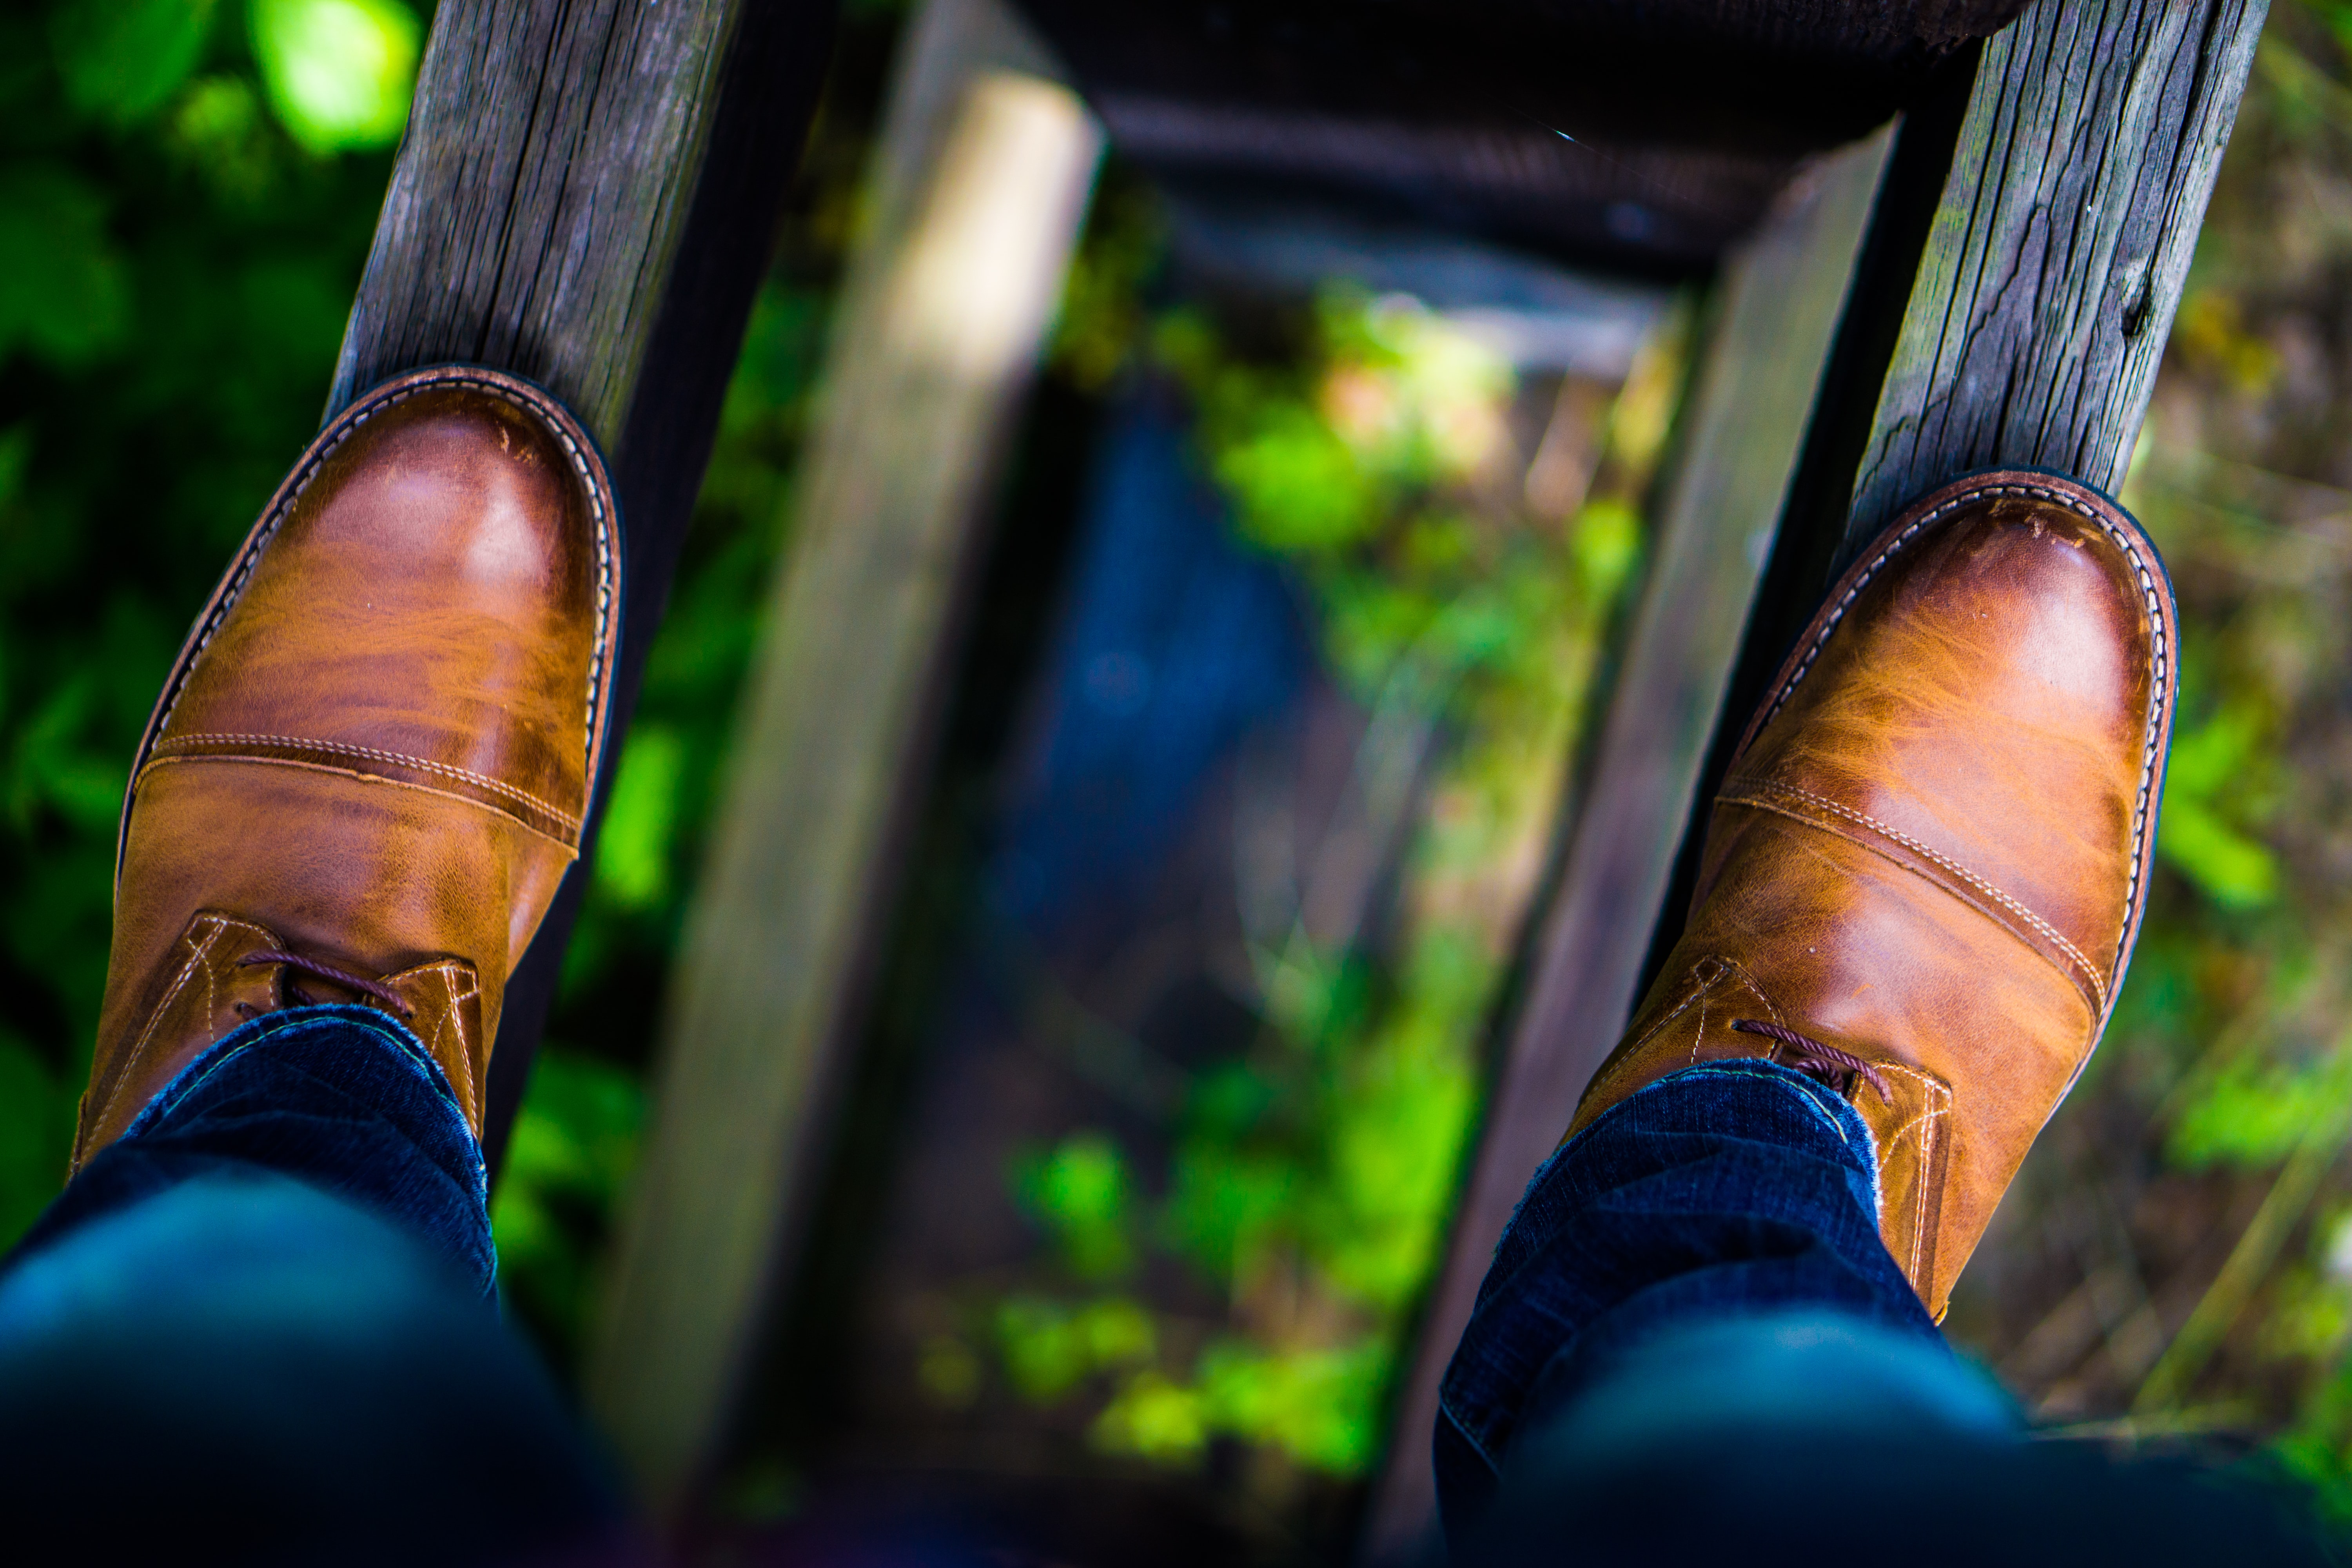 A man balancing on bridge exploring from above with leather shoes in Dublin